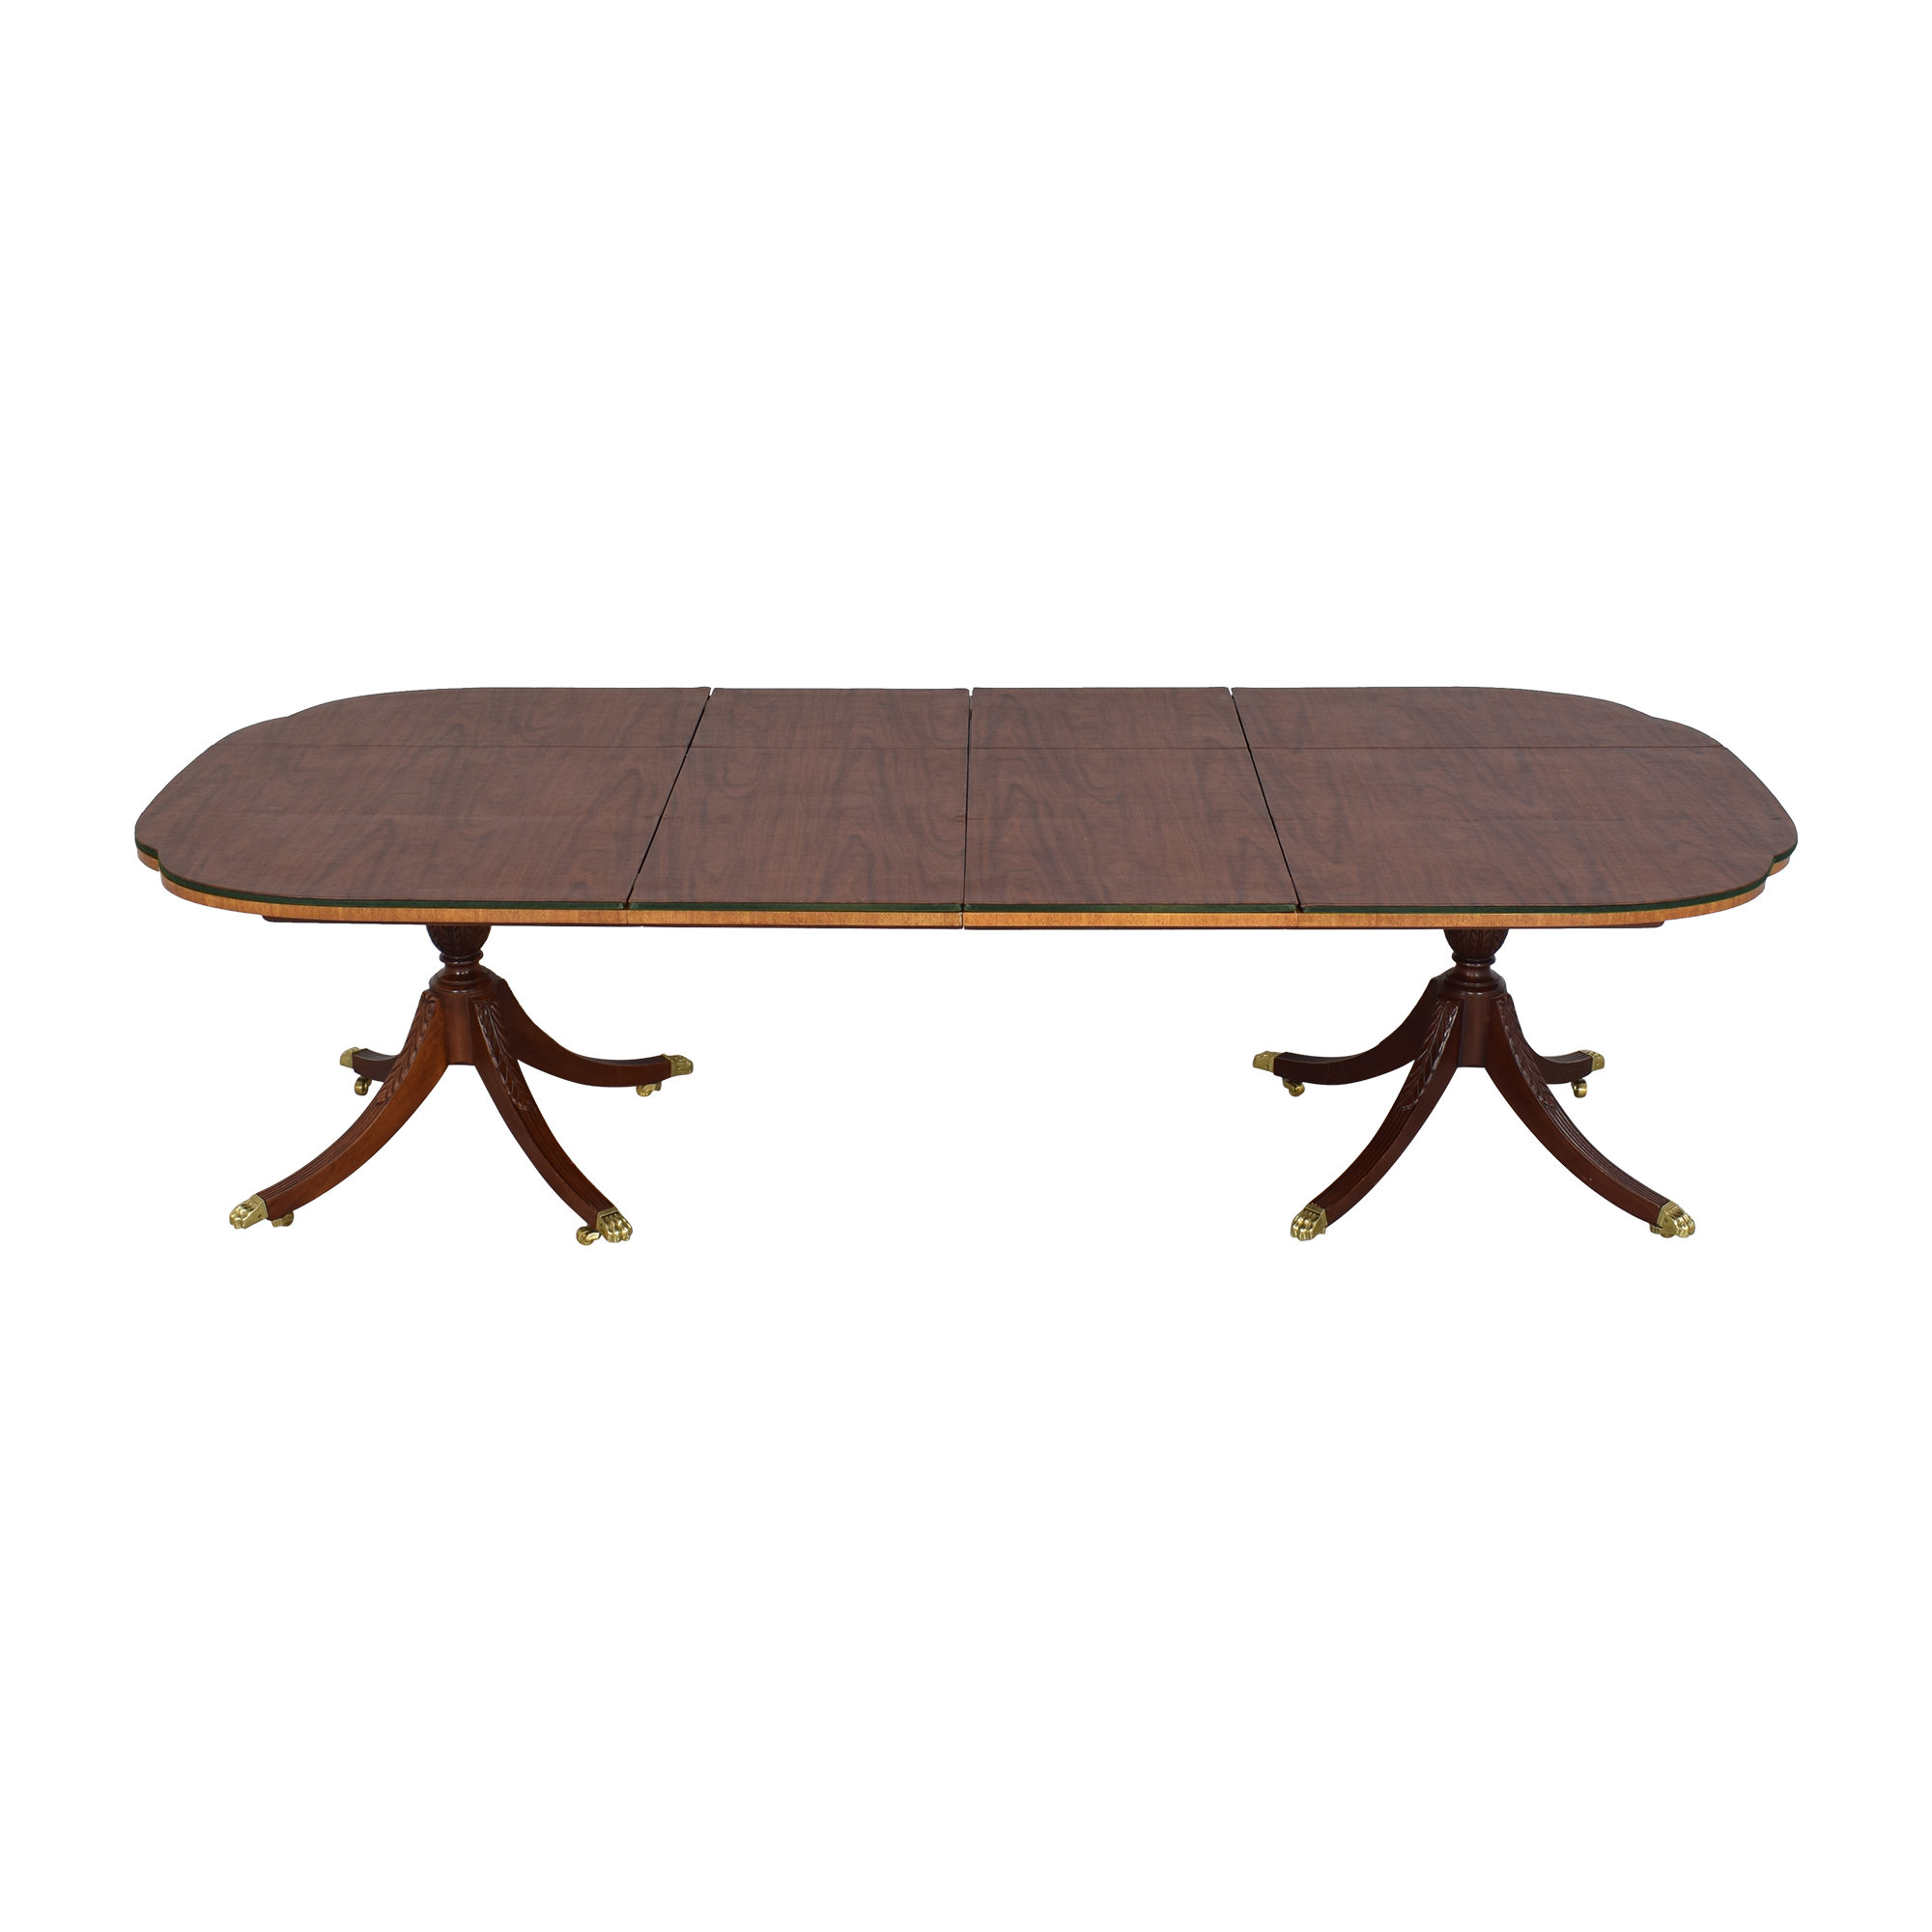 Councill Craftsman Banded Top Dining Table / Tables